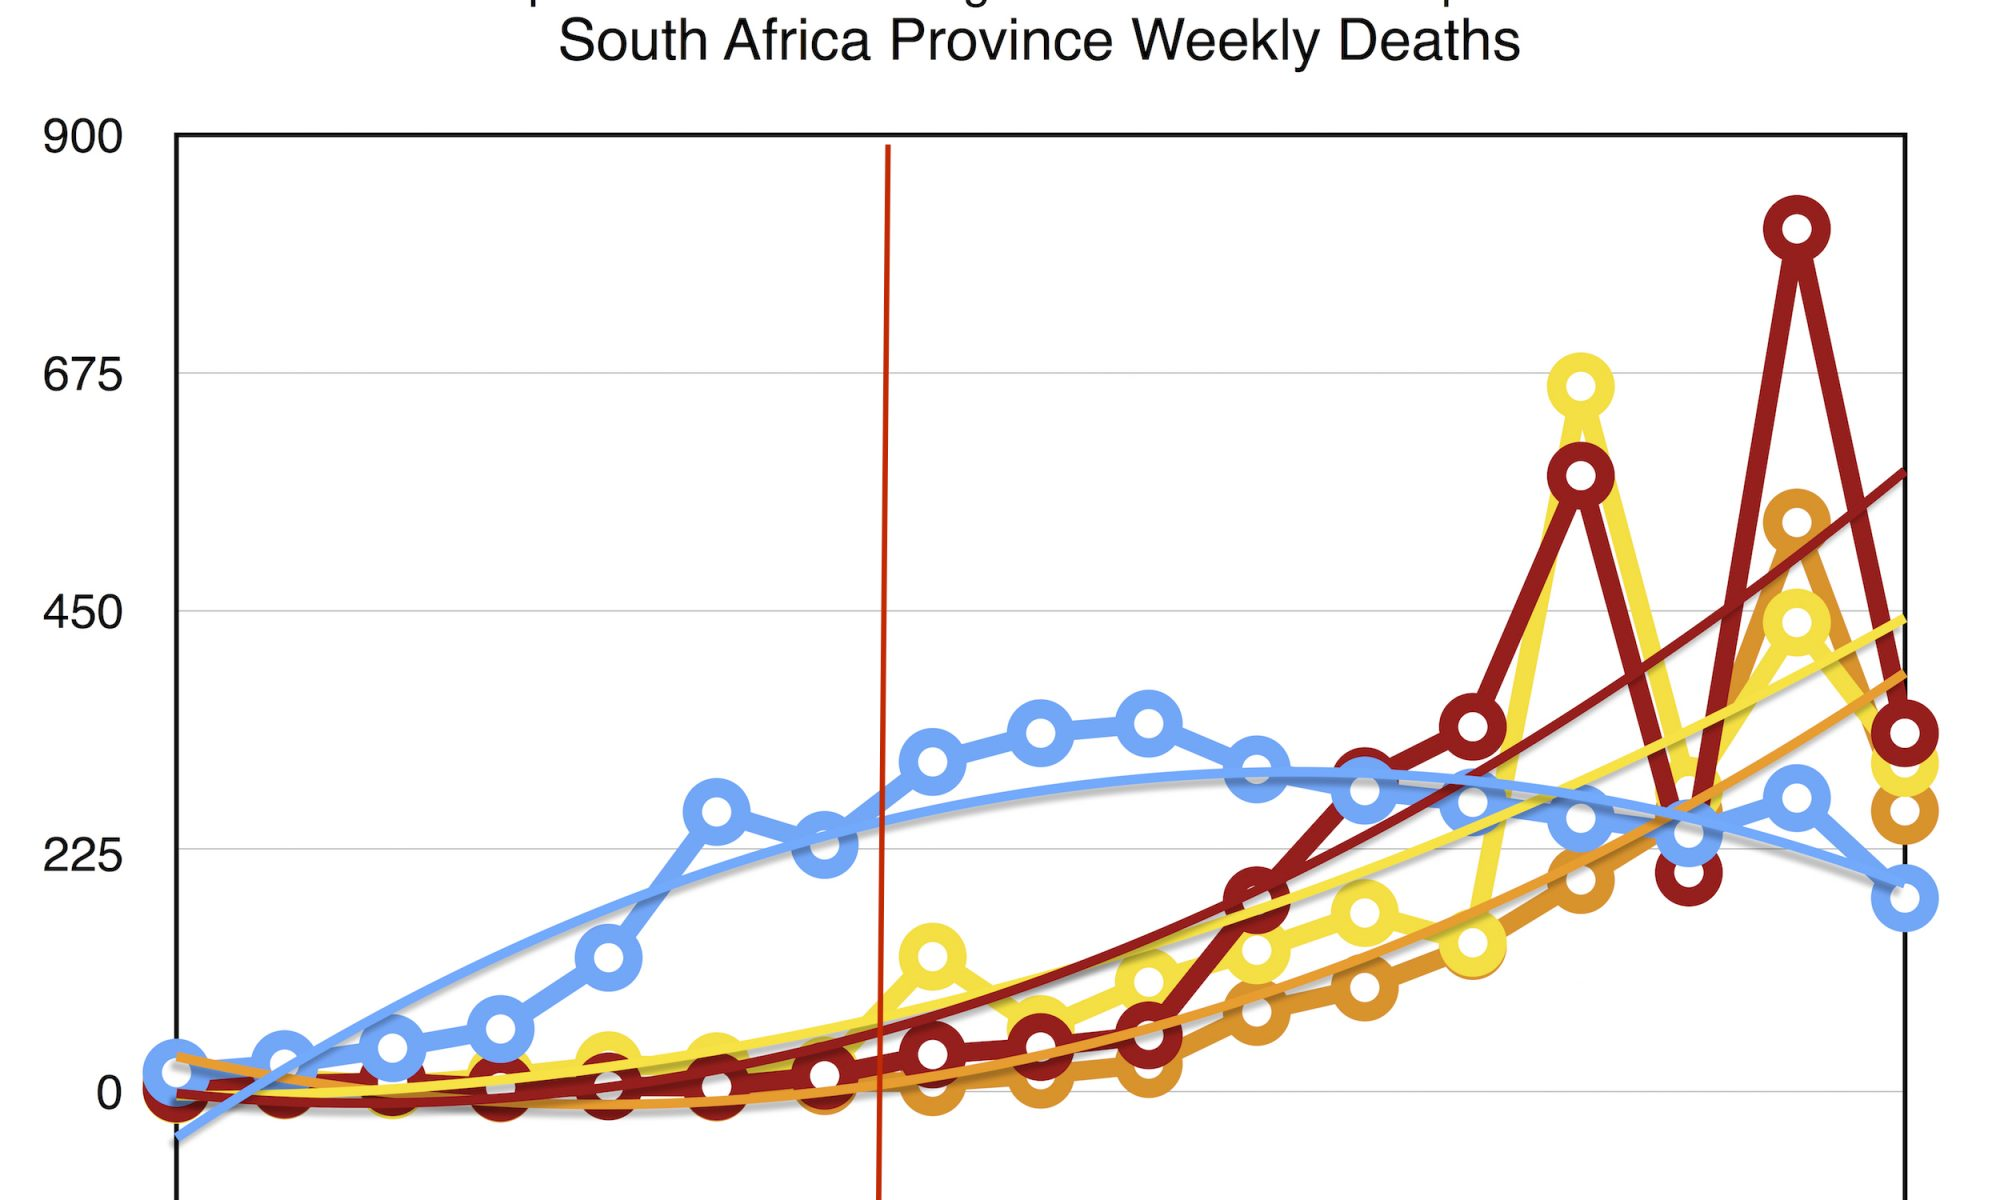 Comparison with Western Cape Coronavirus Model.